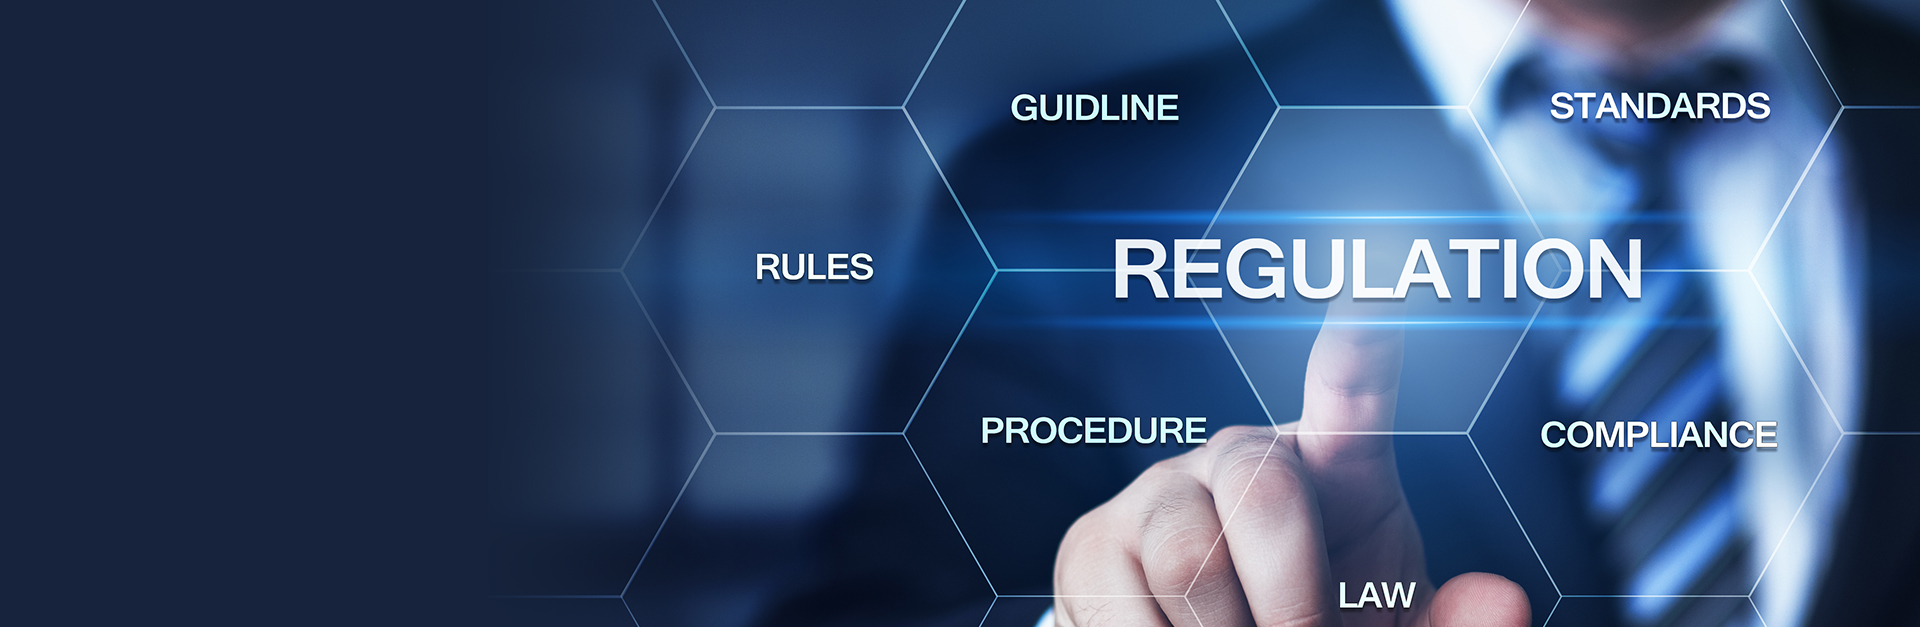 Regulatory Guides